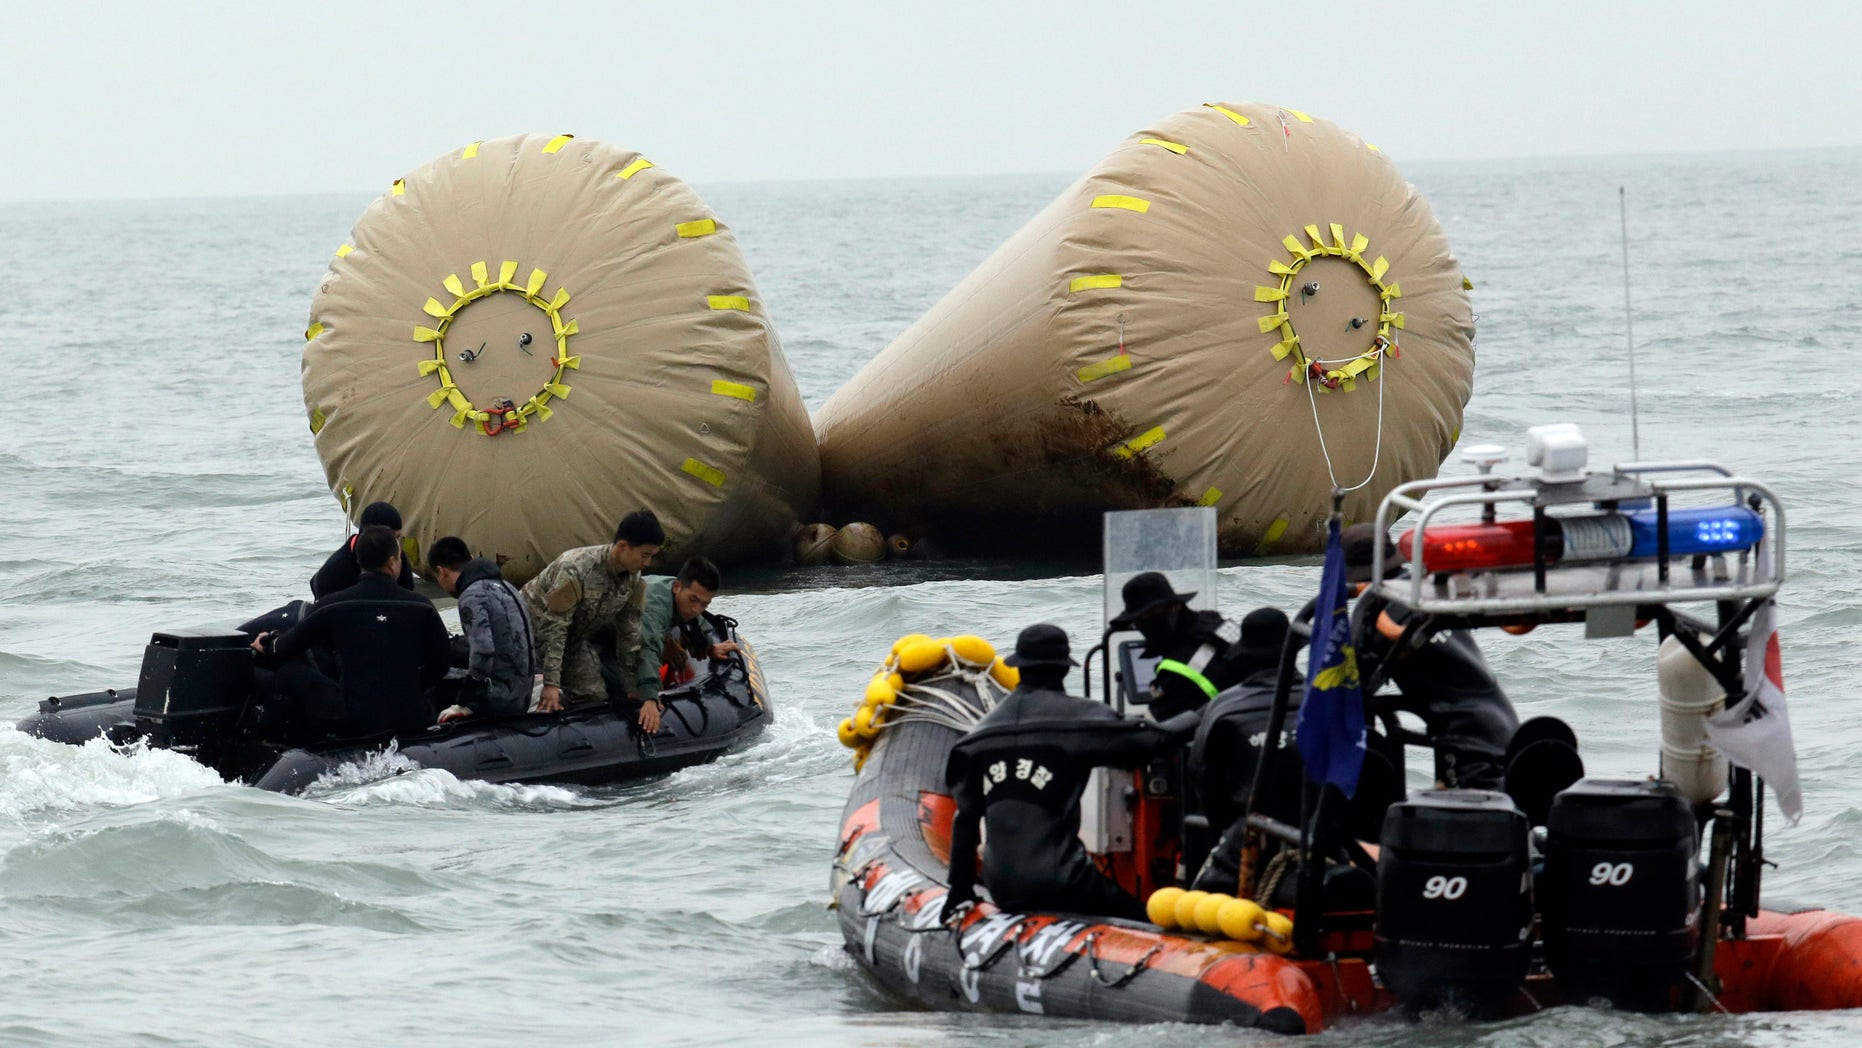 April 19, 2014: South Korean rescue members search passengers believed to have been trapped in the sunken ferry Sewol near the buoys which were installed to mark the area in the water off the southern coast near Jindo, south of Seoul, South Korea.